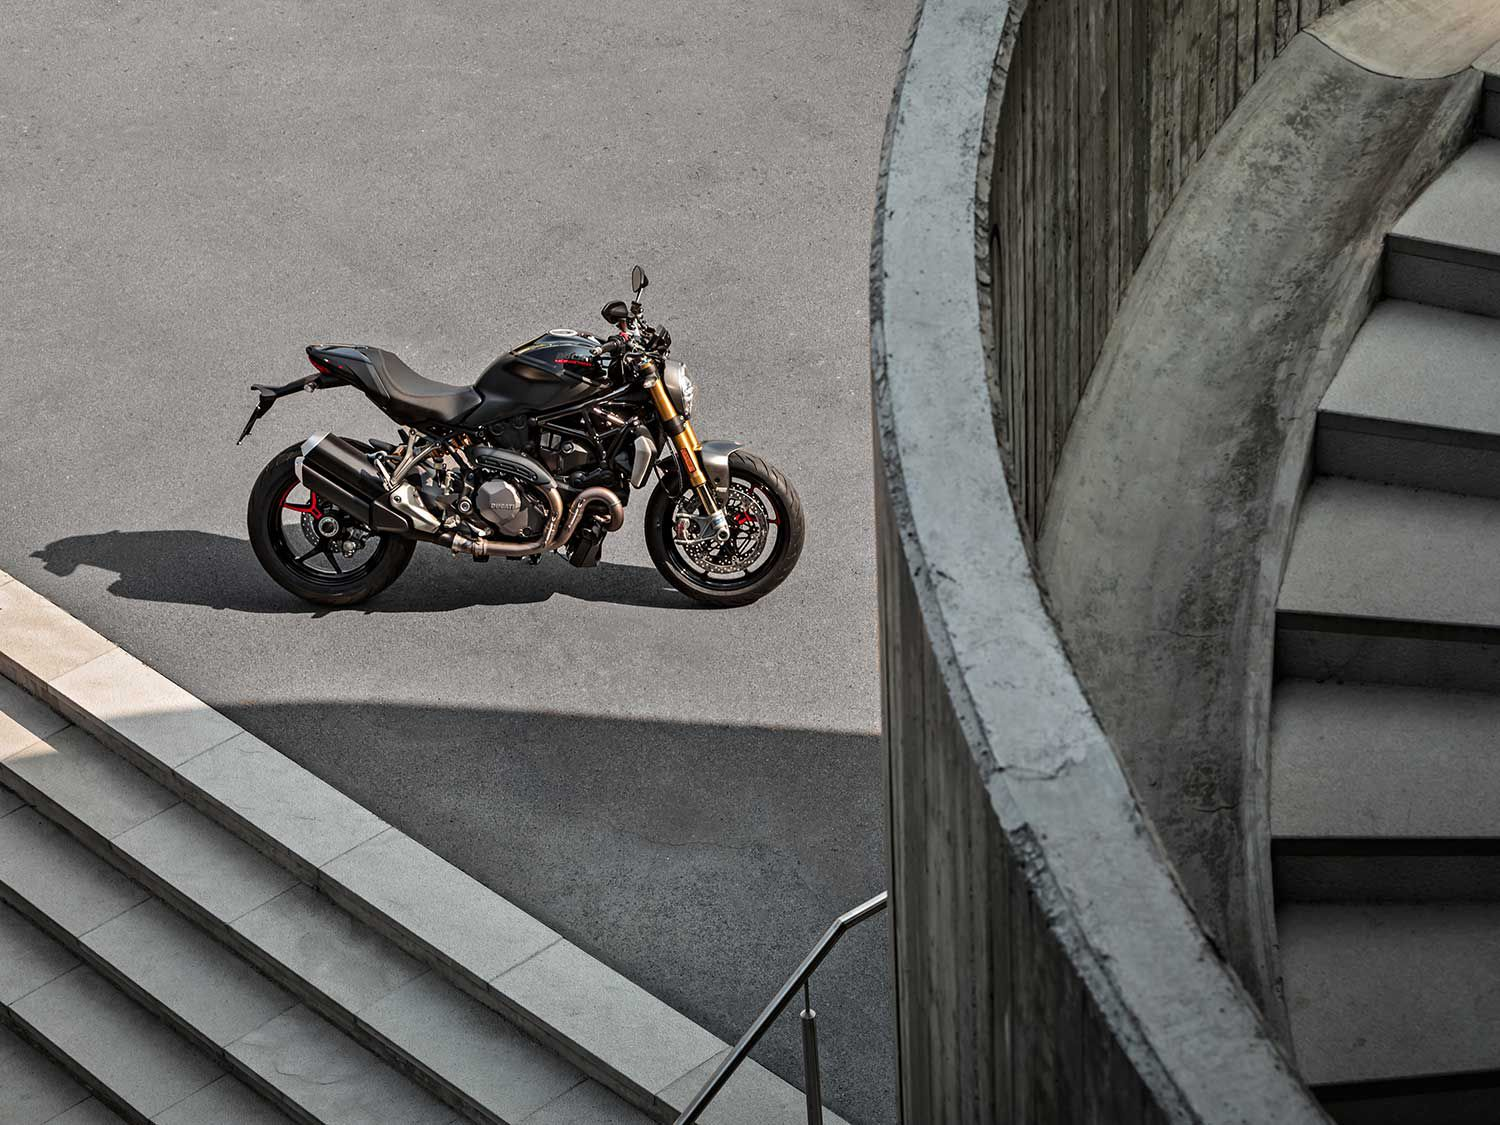 For 2020 Ducati's Monster 1200 S wears special gloss black on matte black livery.